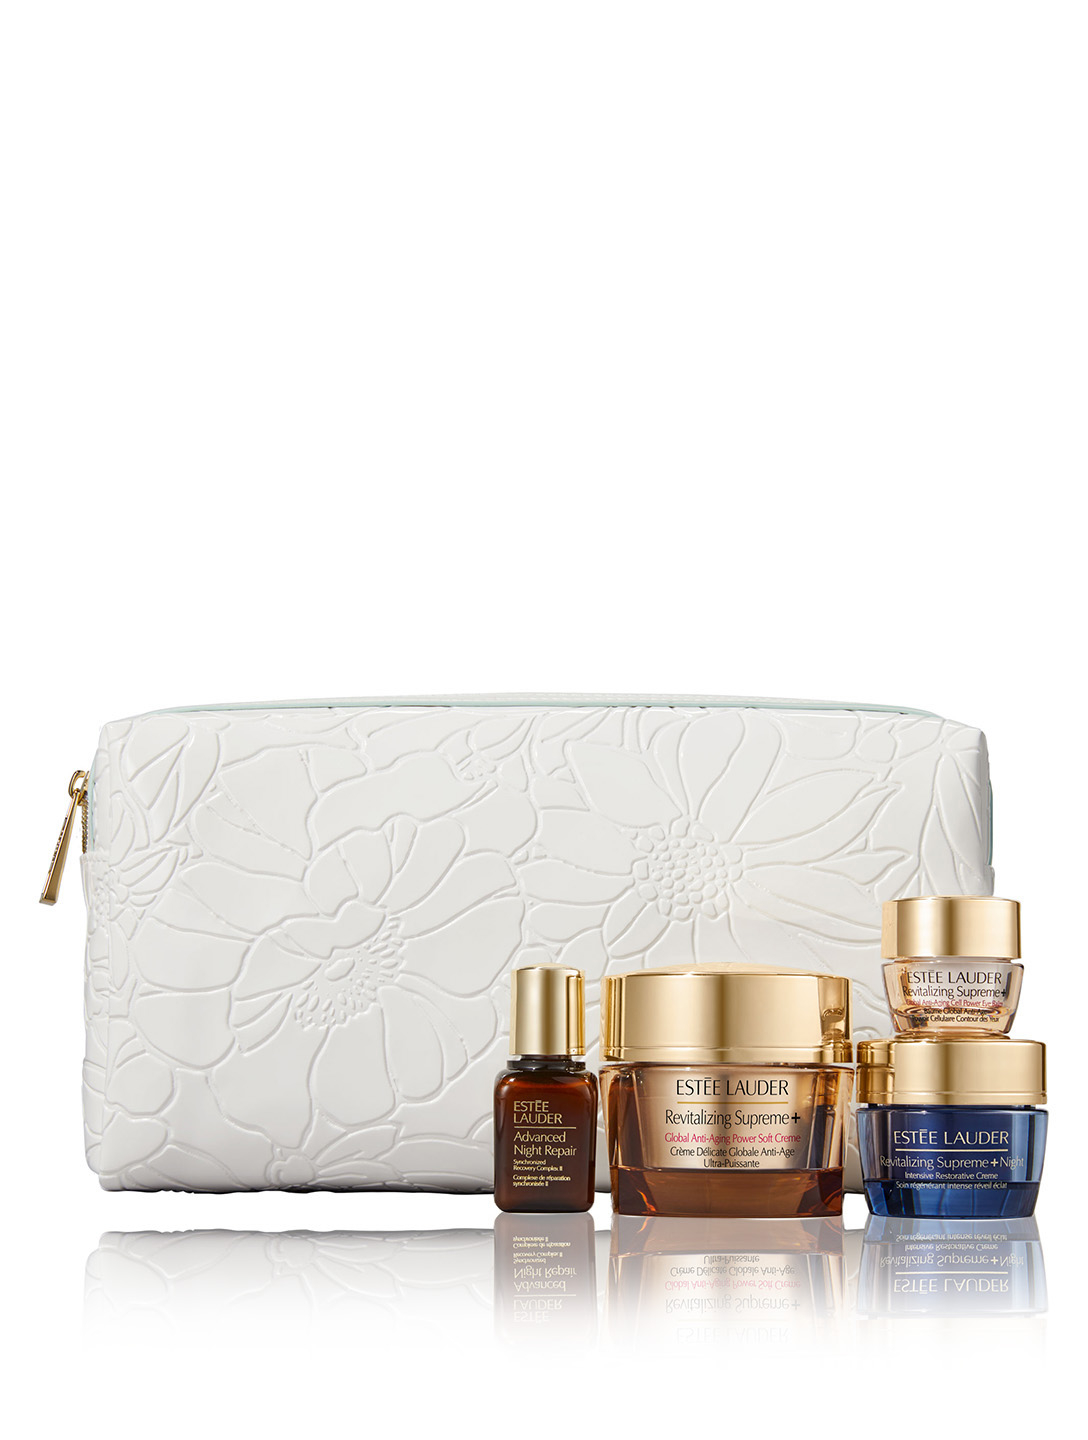 ESTÉE LAUDER All Day Glow Set Beauty